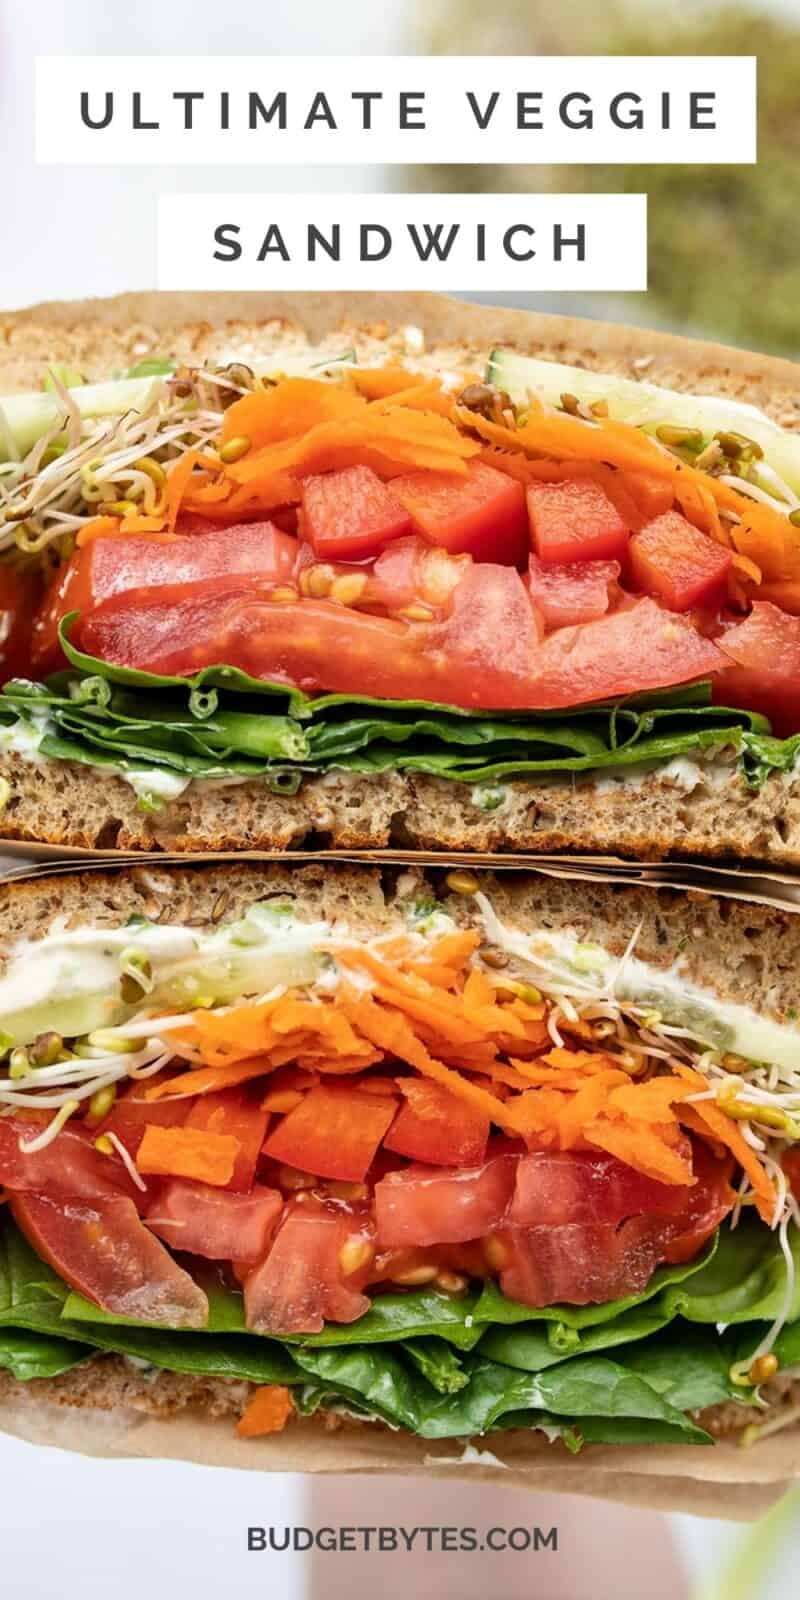 close up of a cut open veggie sandwich, title text at the top